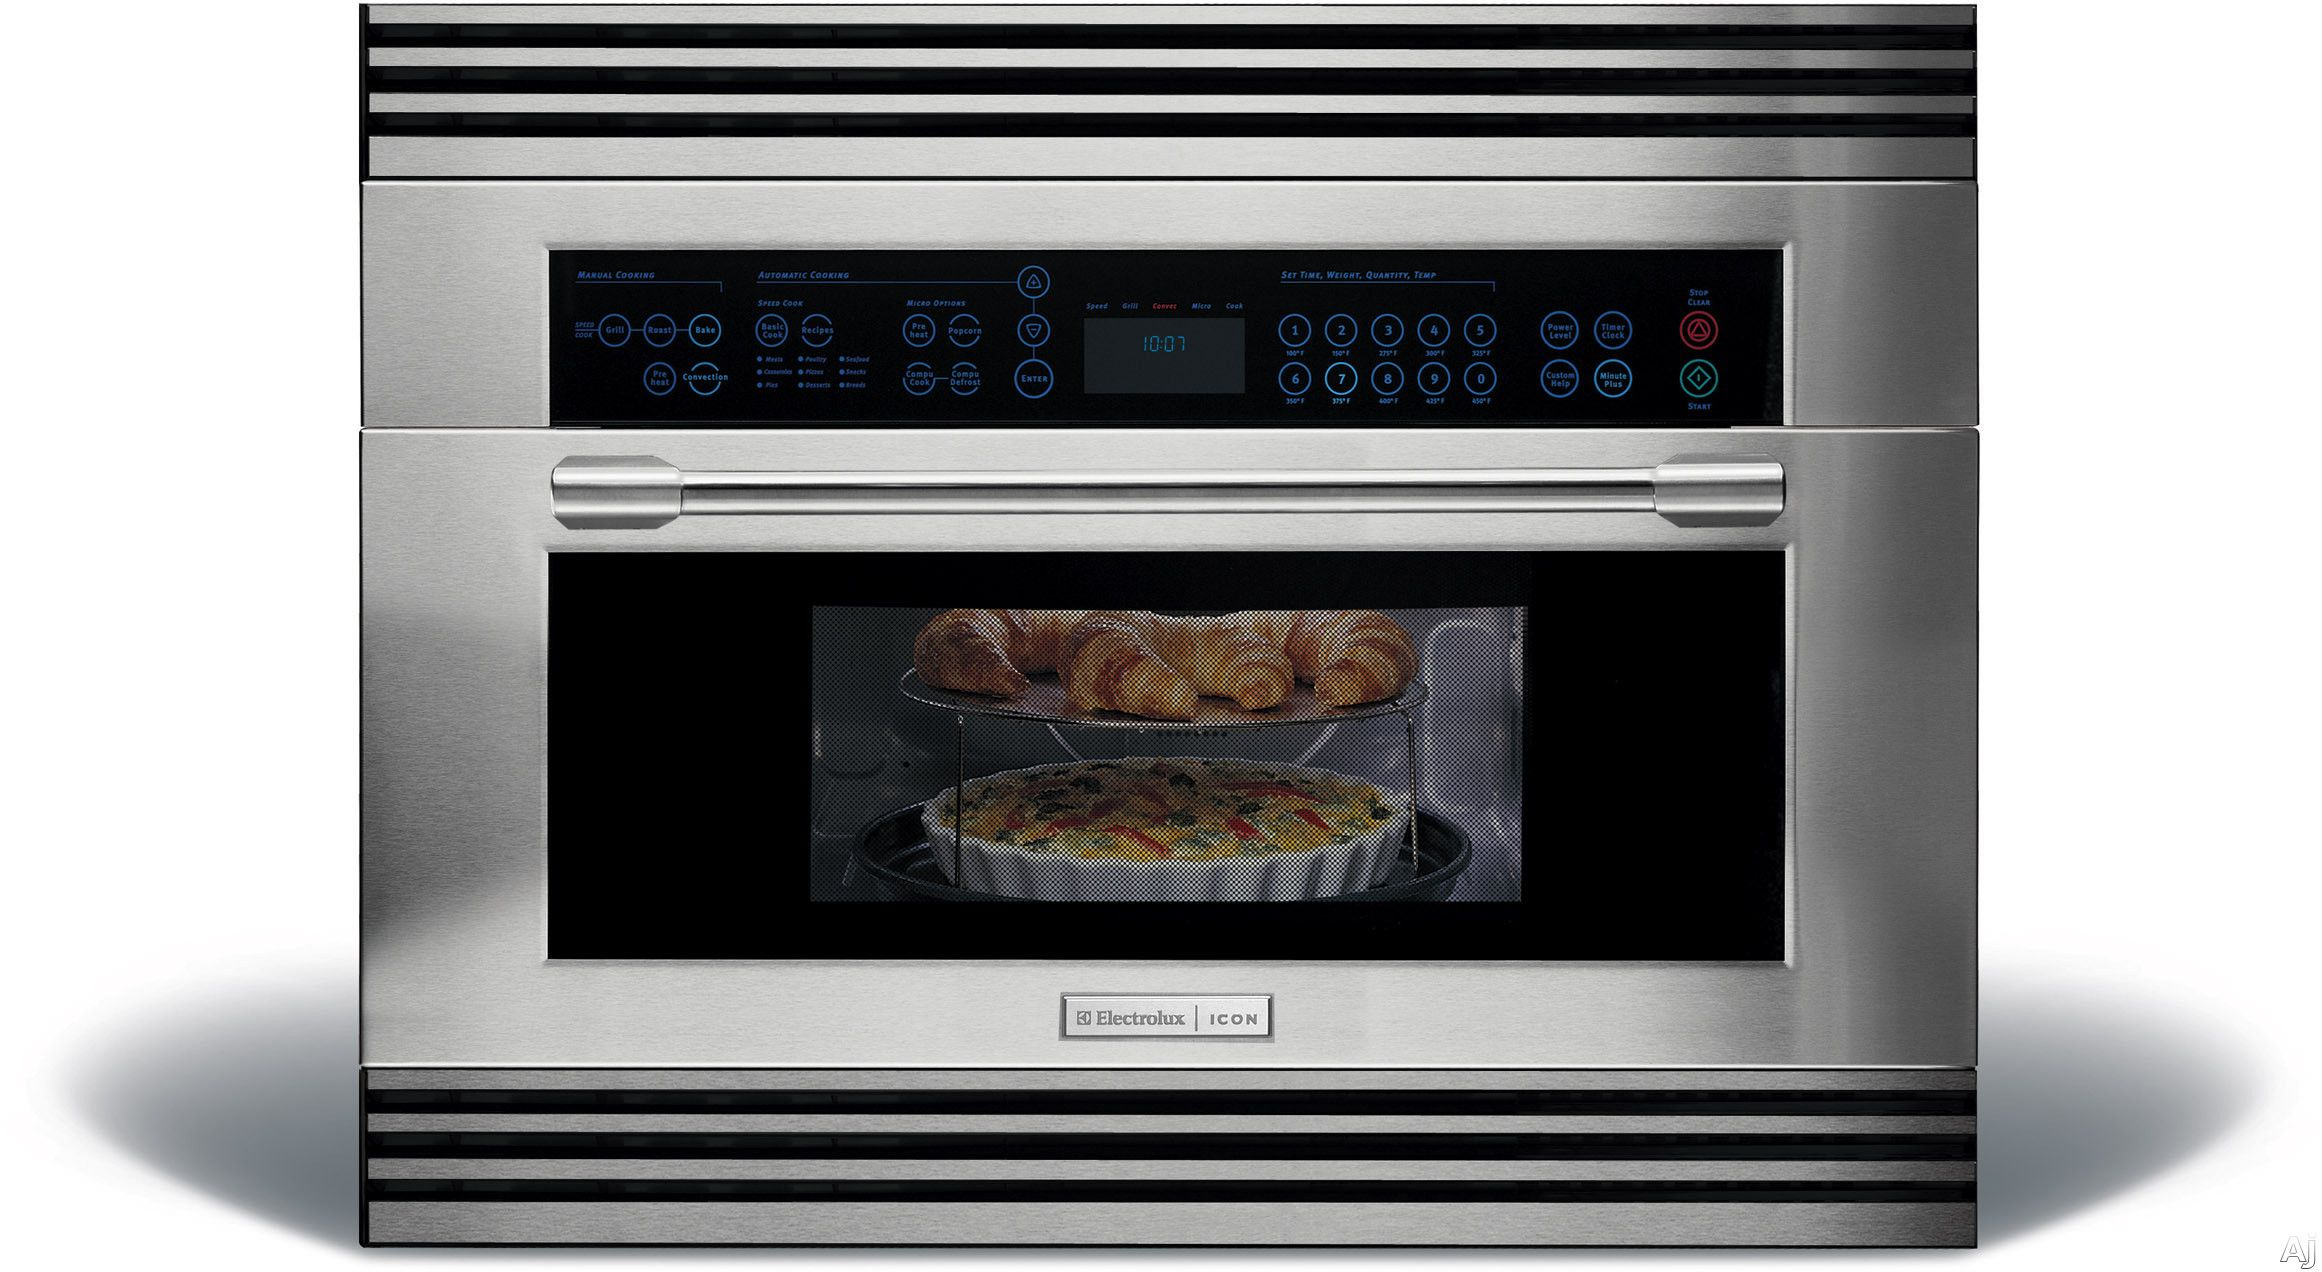 Electrolux E30so75fps 30 High Sd Oven With 1 Cu Ft Convection 1000 Watts Manual Clean And Gl Wave Touch Controls